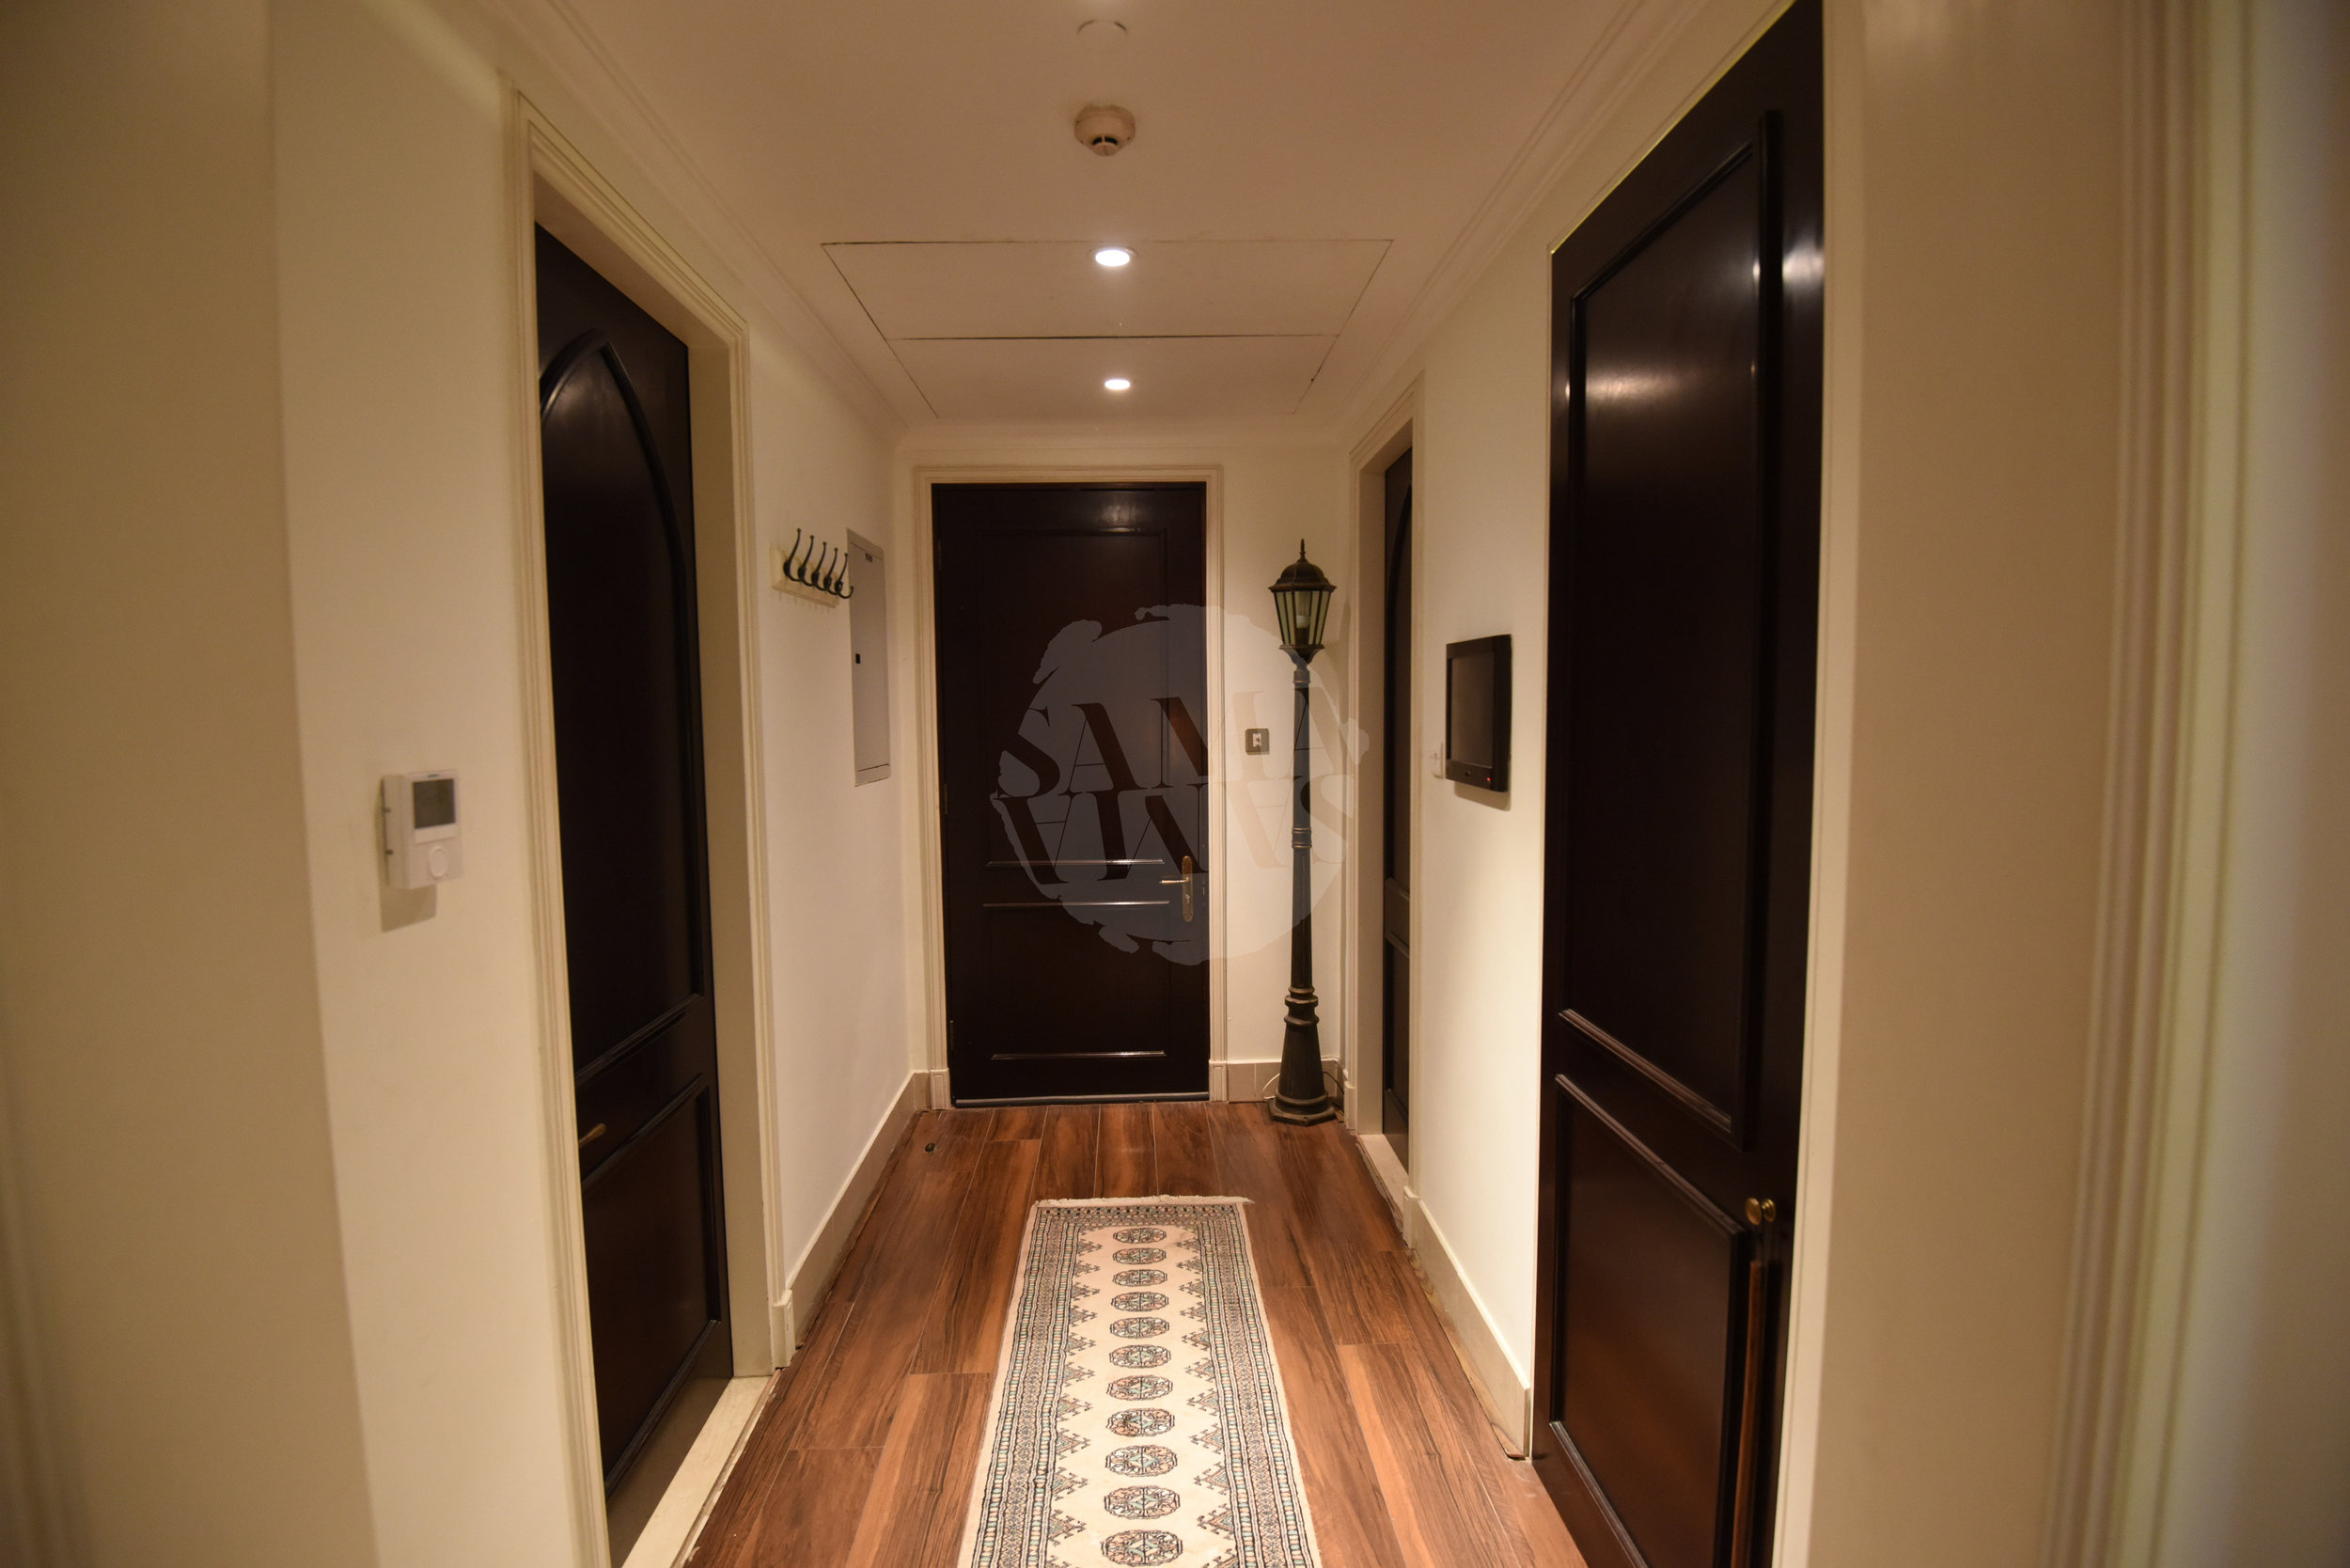 The apartment is bright and spacious. It's location means you are within walking distance to some of Dubai's most famous sights